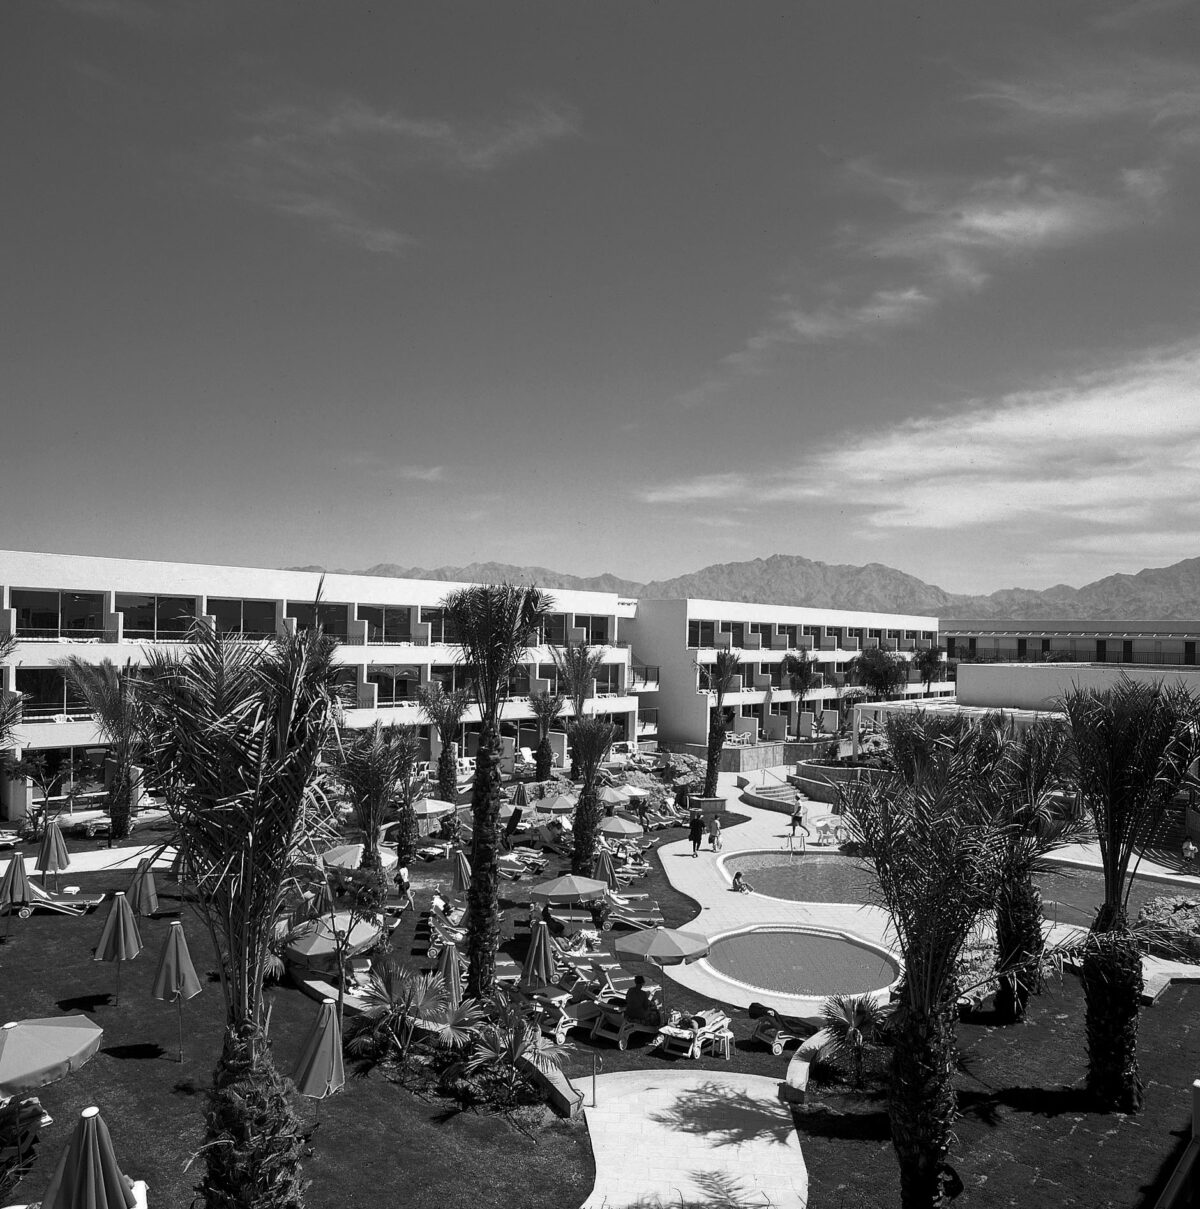 PARADISE RED SEA HOTEL EILAT